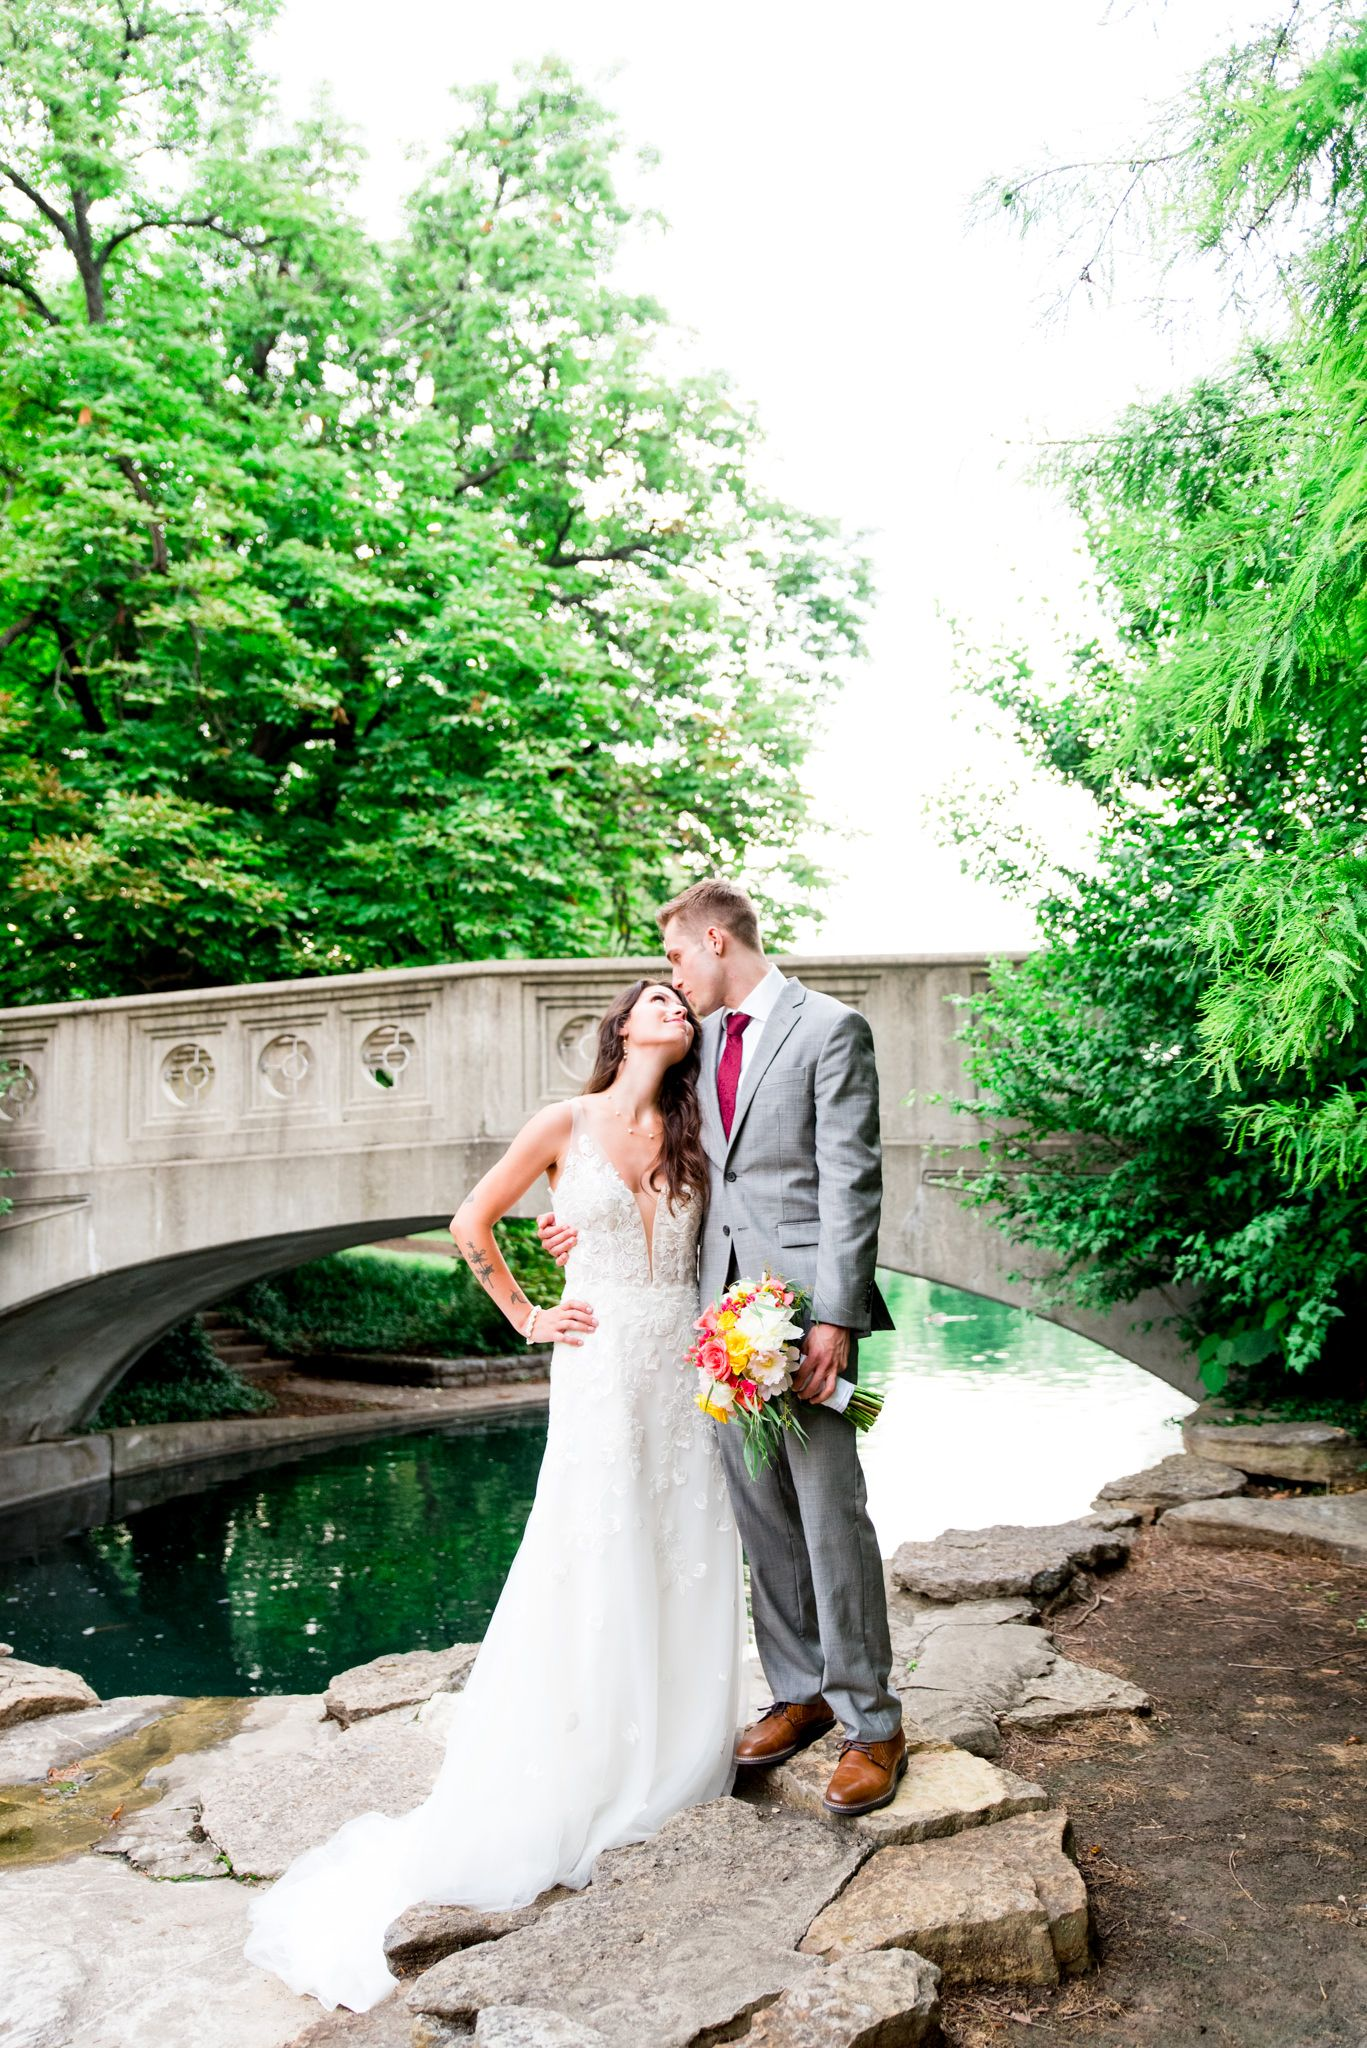 bride in Serafine gown and groom in gray suit holding pink and yellow bouquet looking at each other at Eden Park